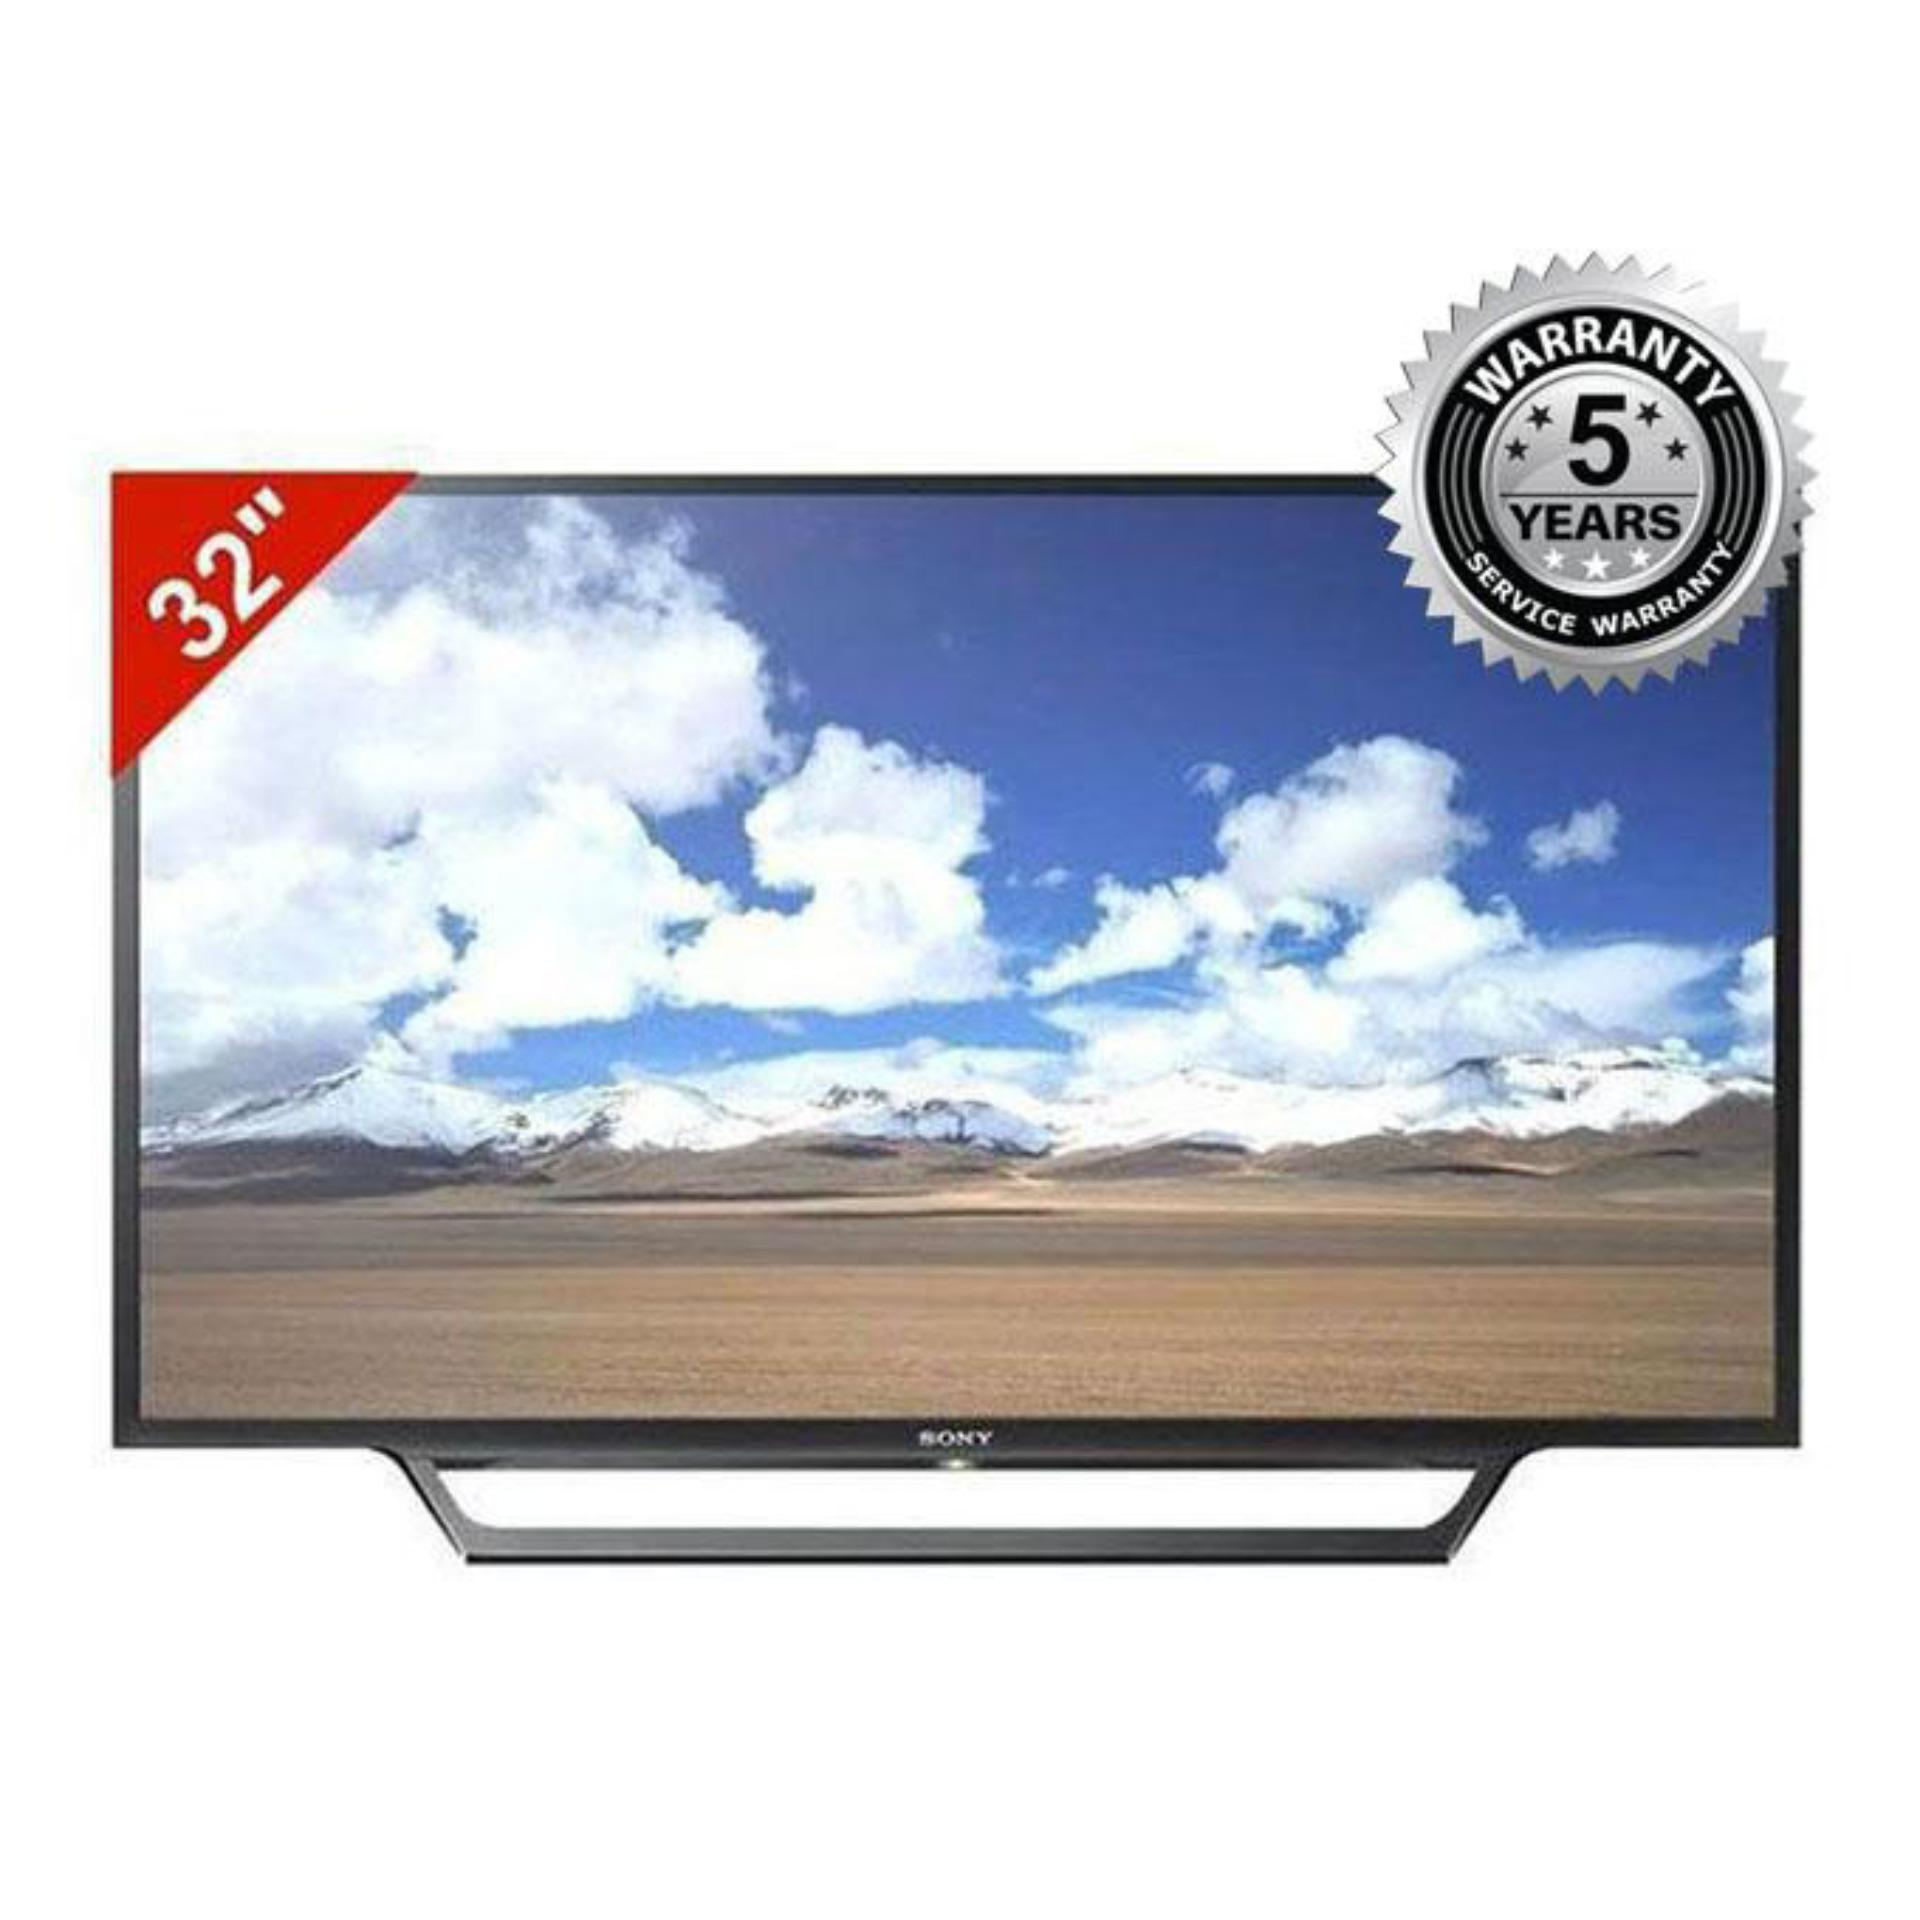 Samsung Flat Screen Tv Price Televisions Online Best Tv Price In Bangladesh 2019 Daraz Bd